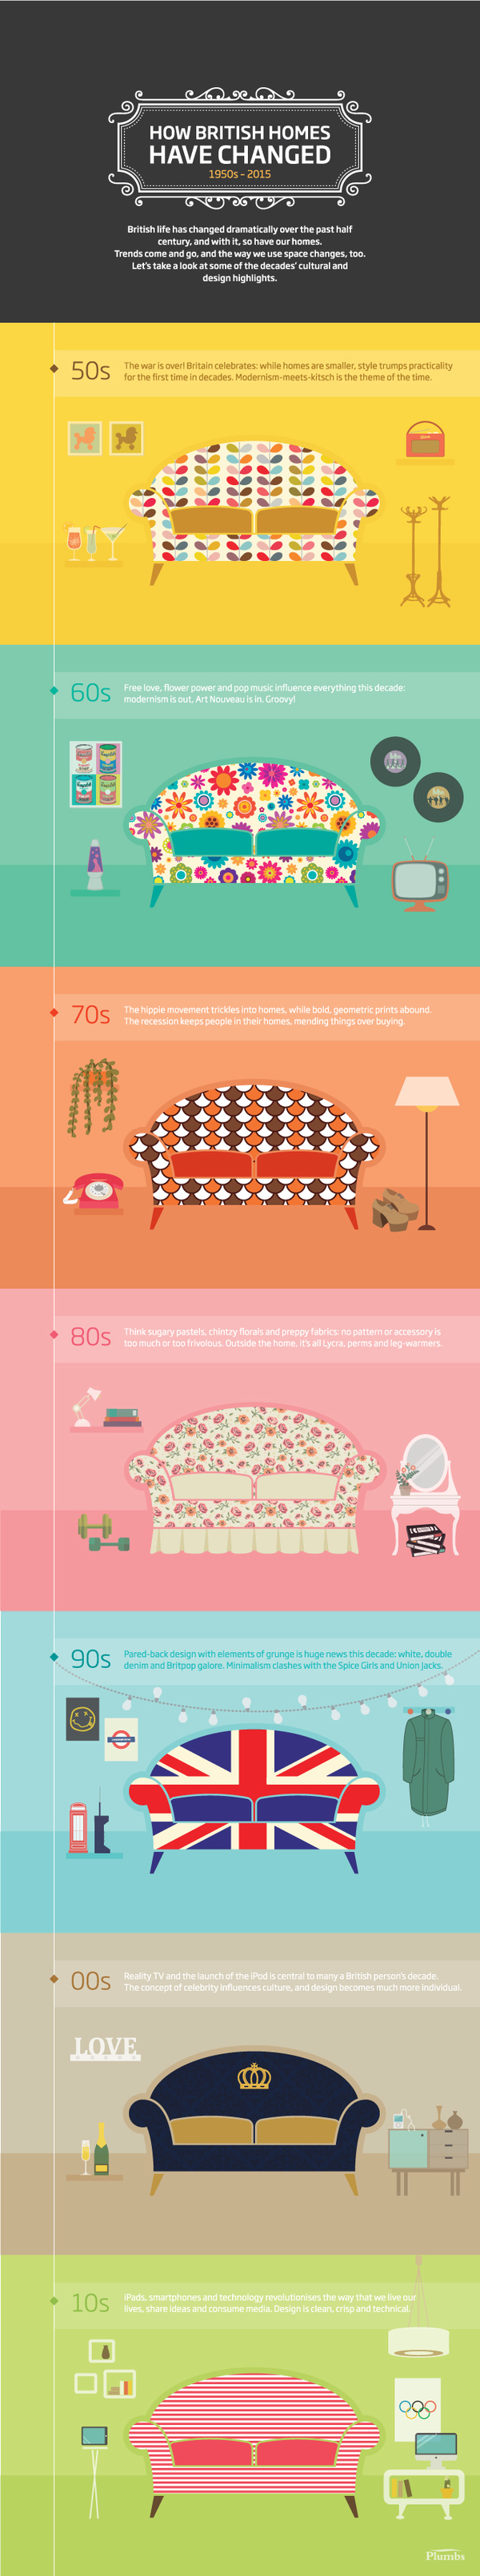 How British Homes Have Changed 1950s - 2015